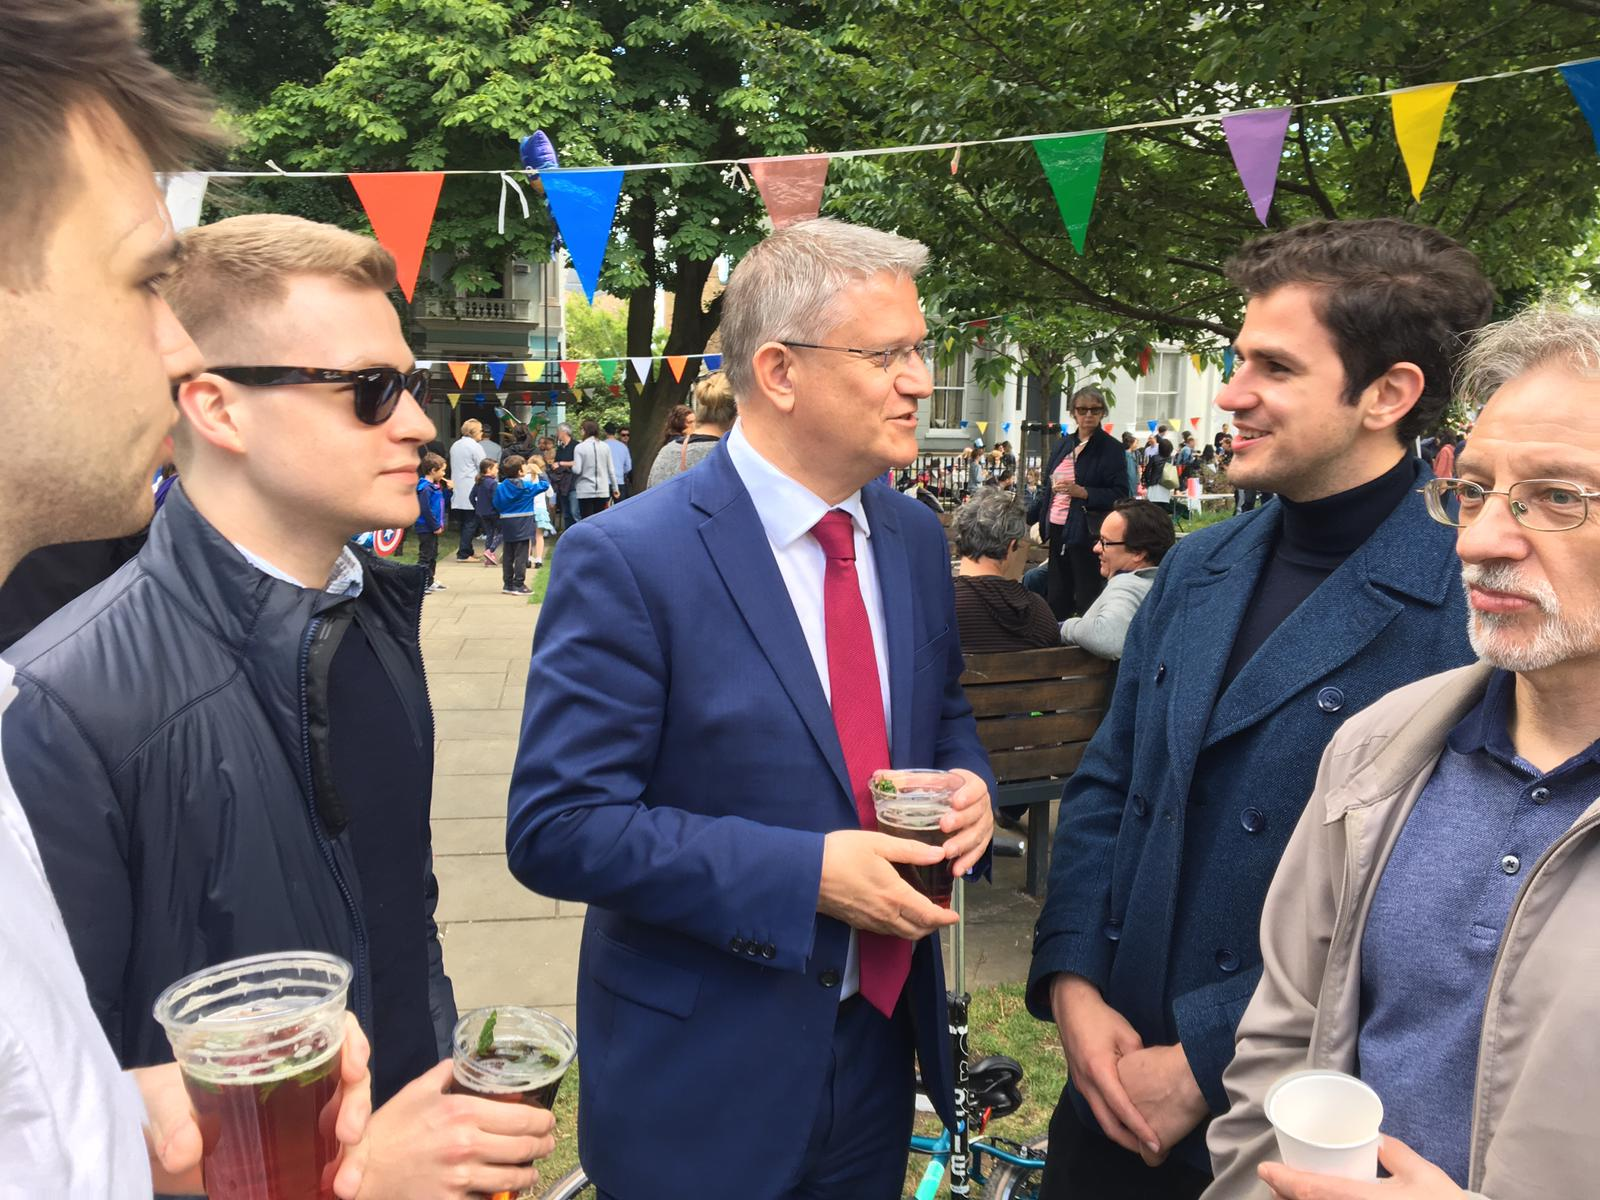 ANDREW ROSINDELL MP DROPPED BY, SEEN HERE TALKING TO ROBERTO WEEDEN SANZ